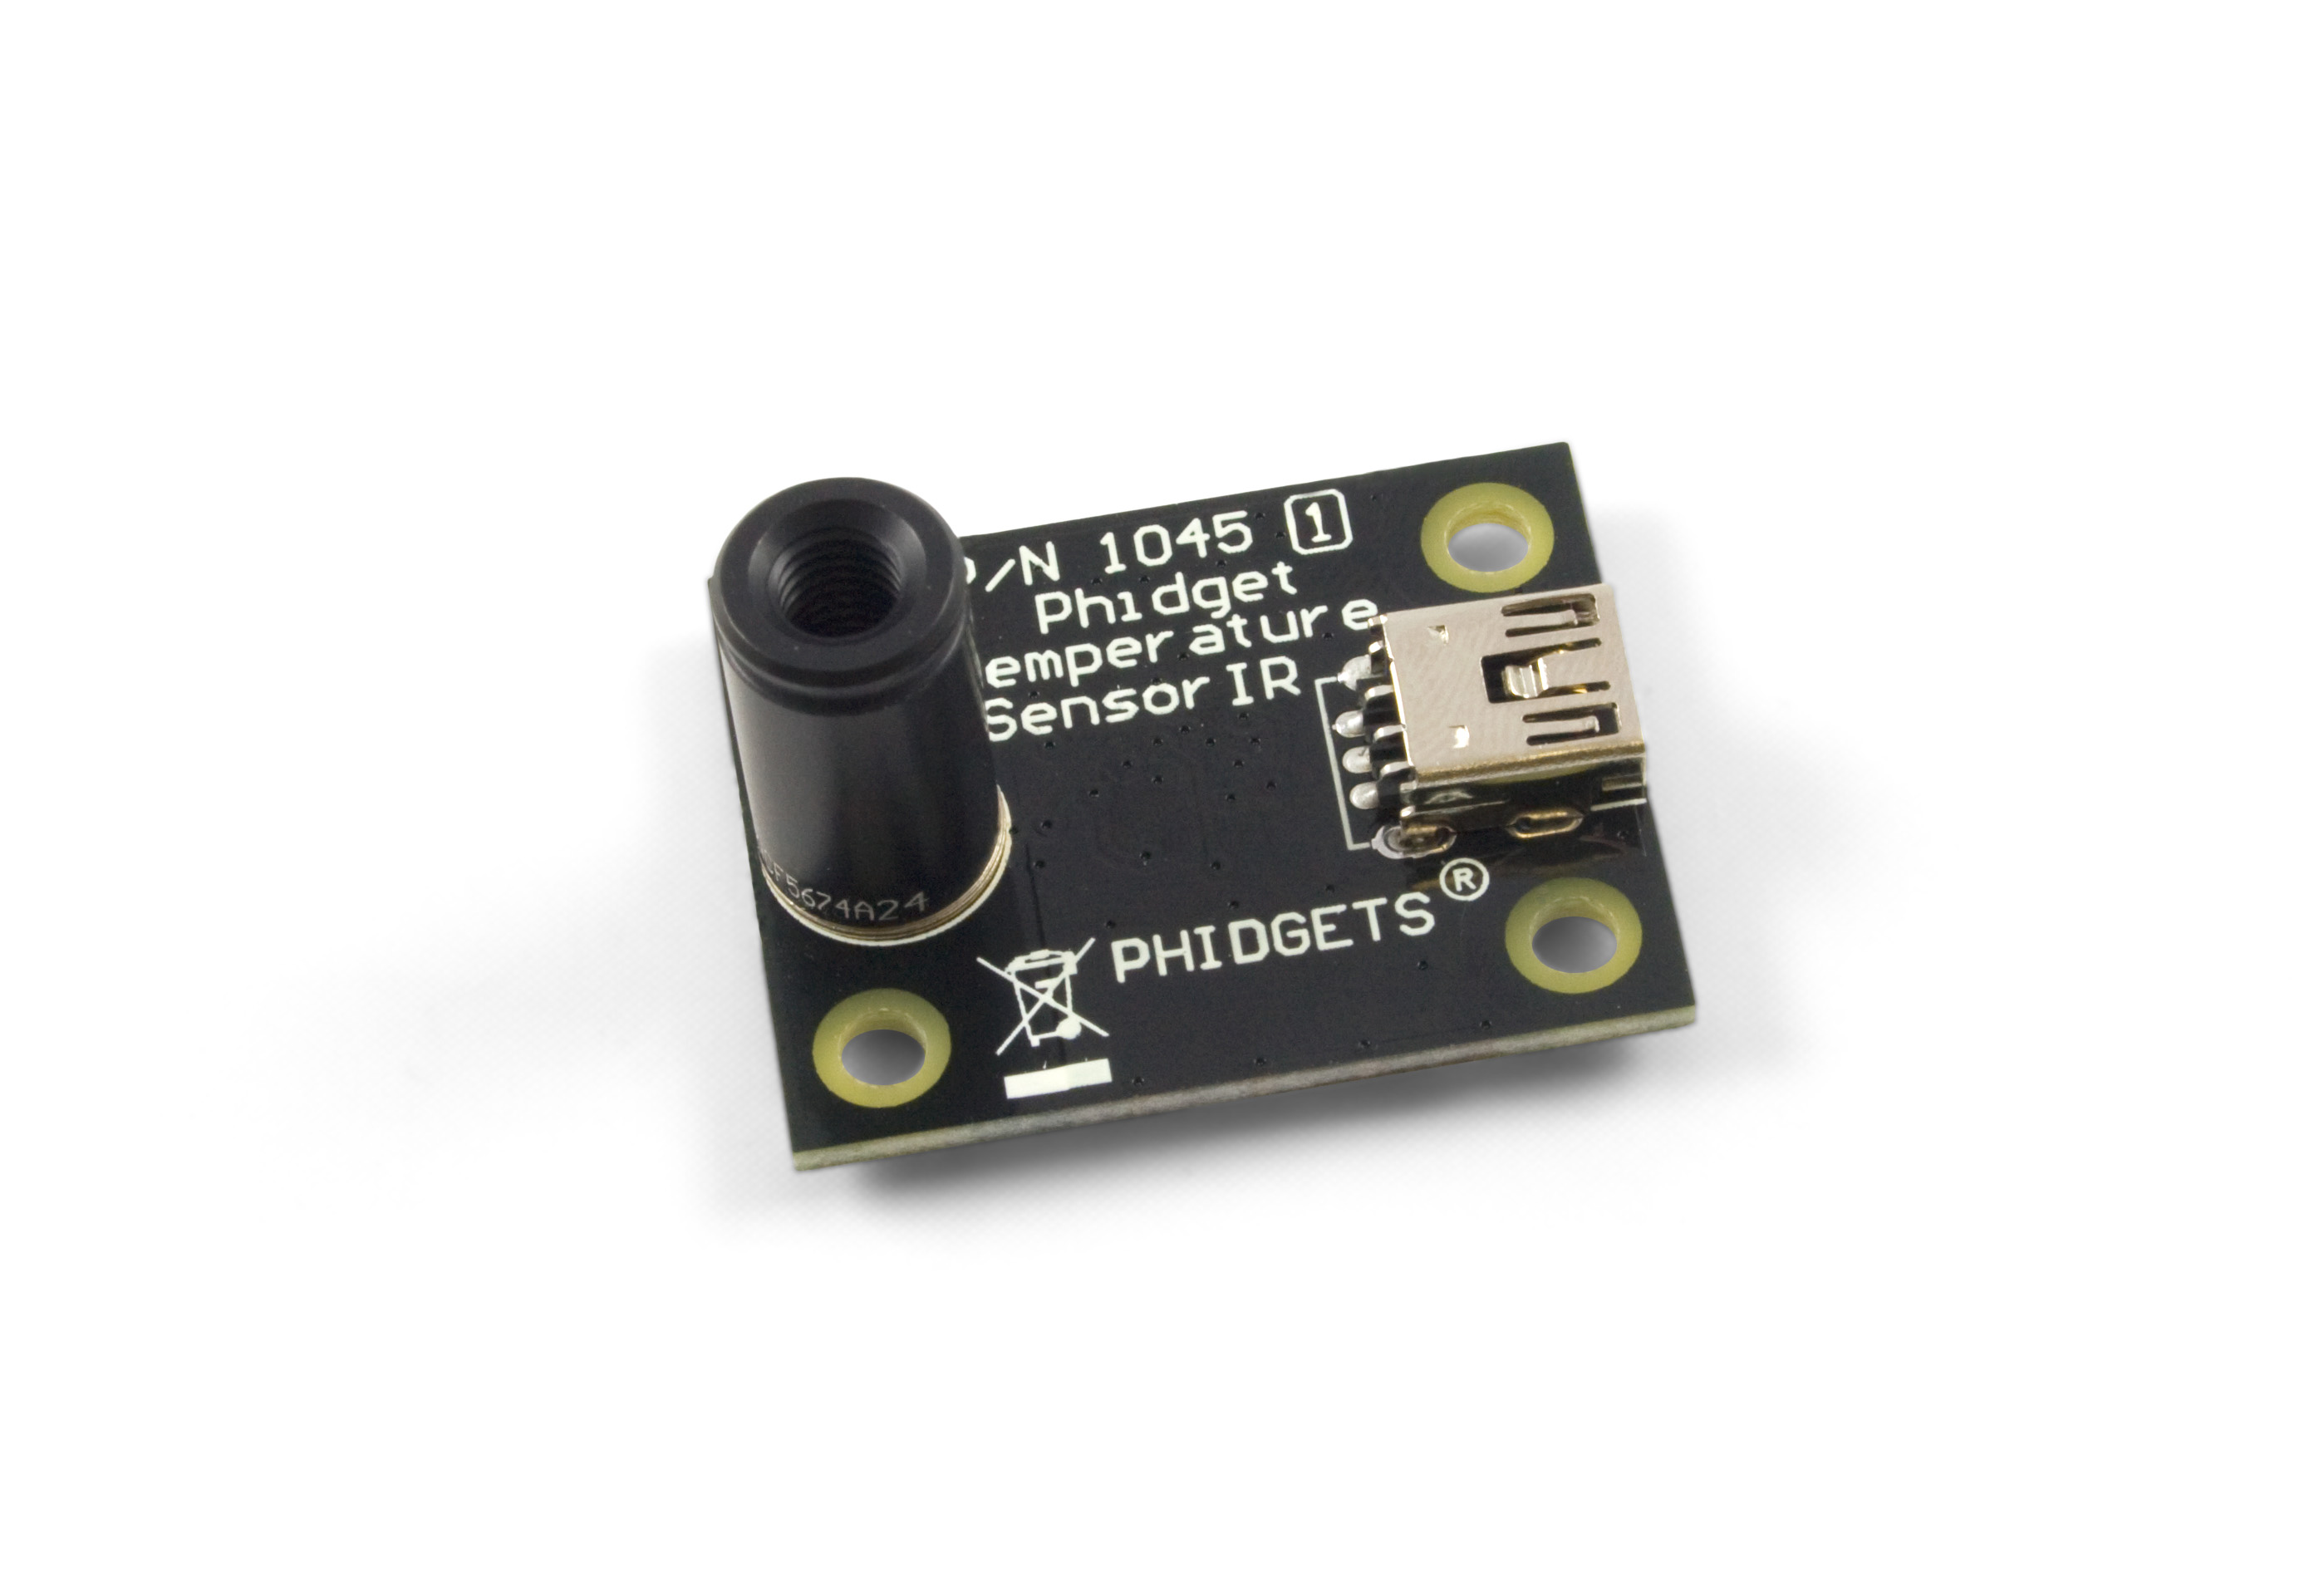 PhidgetTemperatureSensor IR - 1045_1 at Phidgets